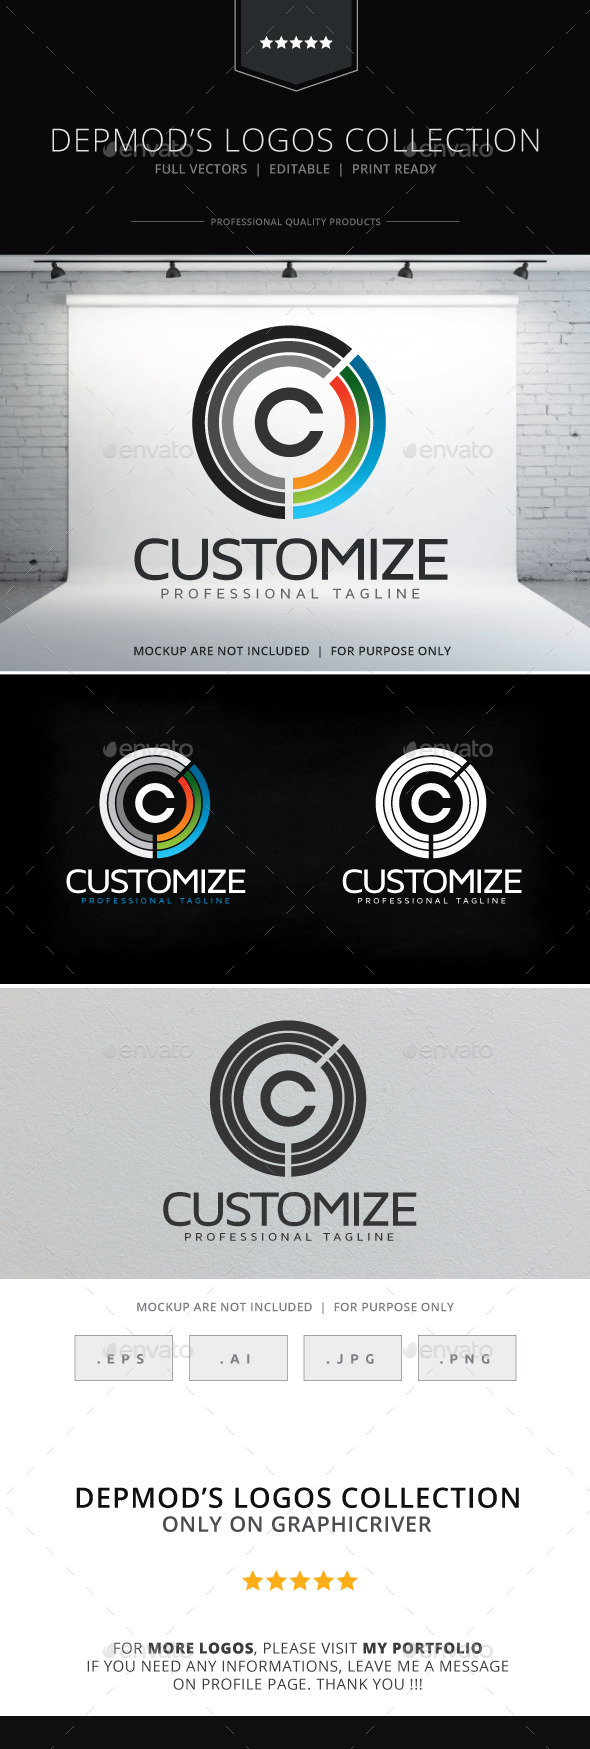 Customize Logo